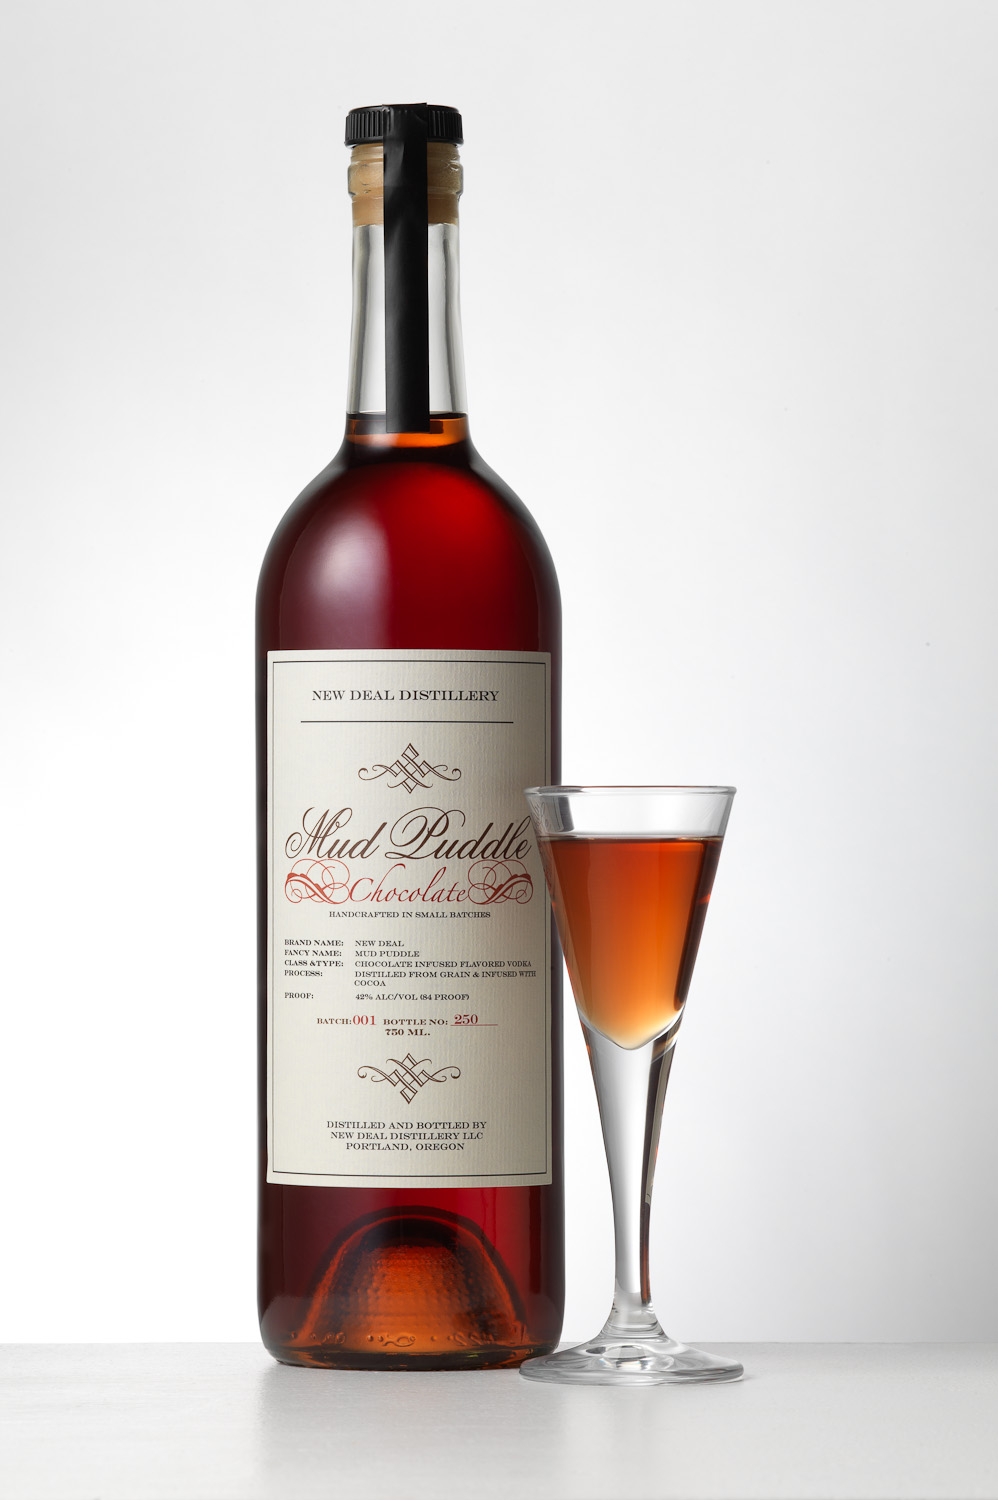 New Deal Distilling Mud Puddle chocolate vodka